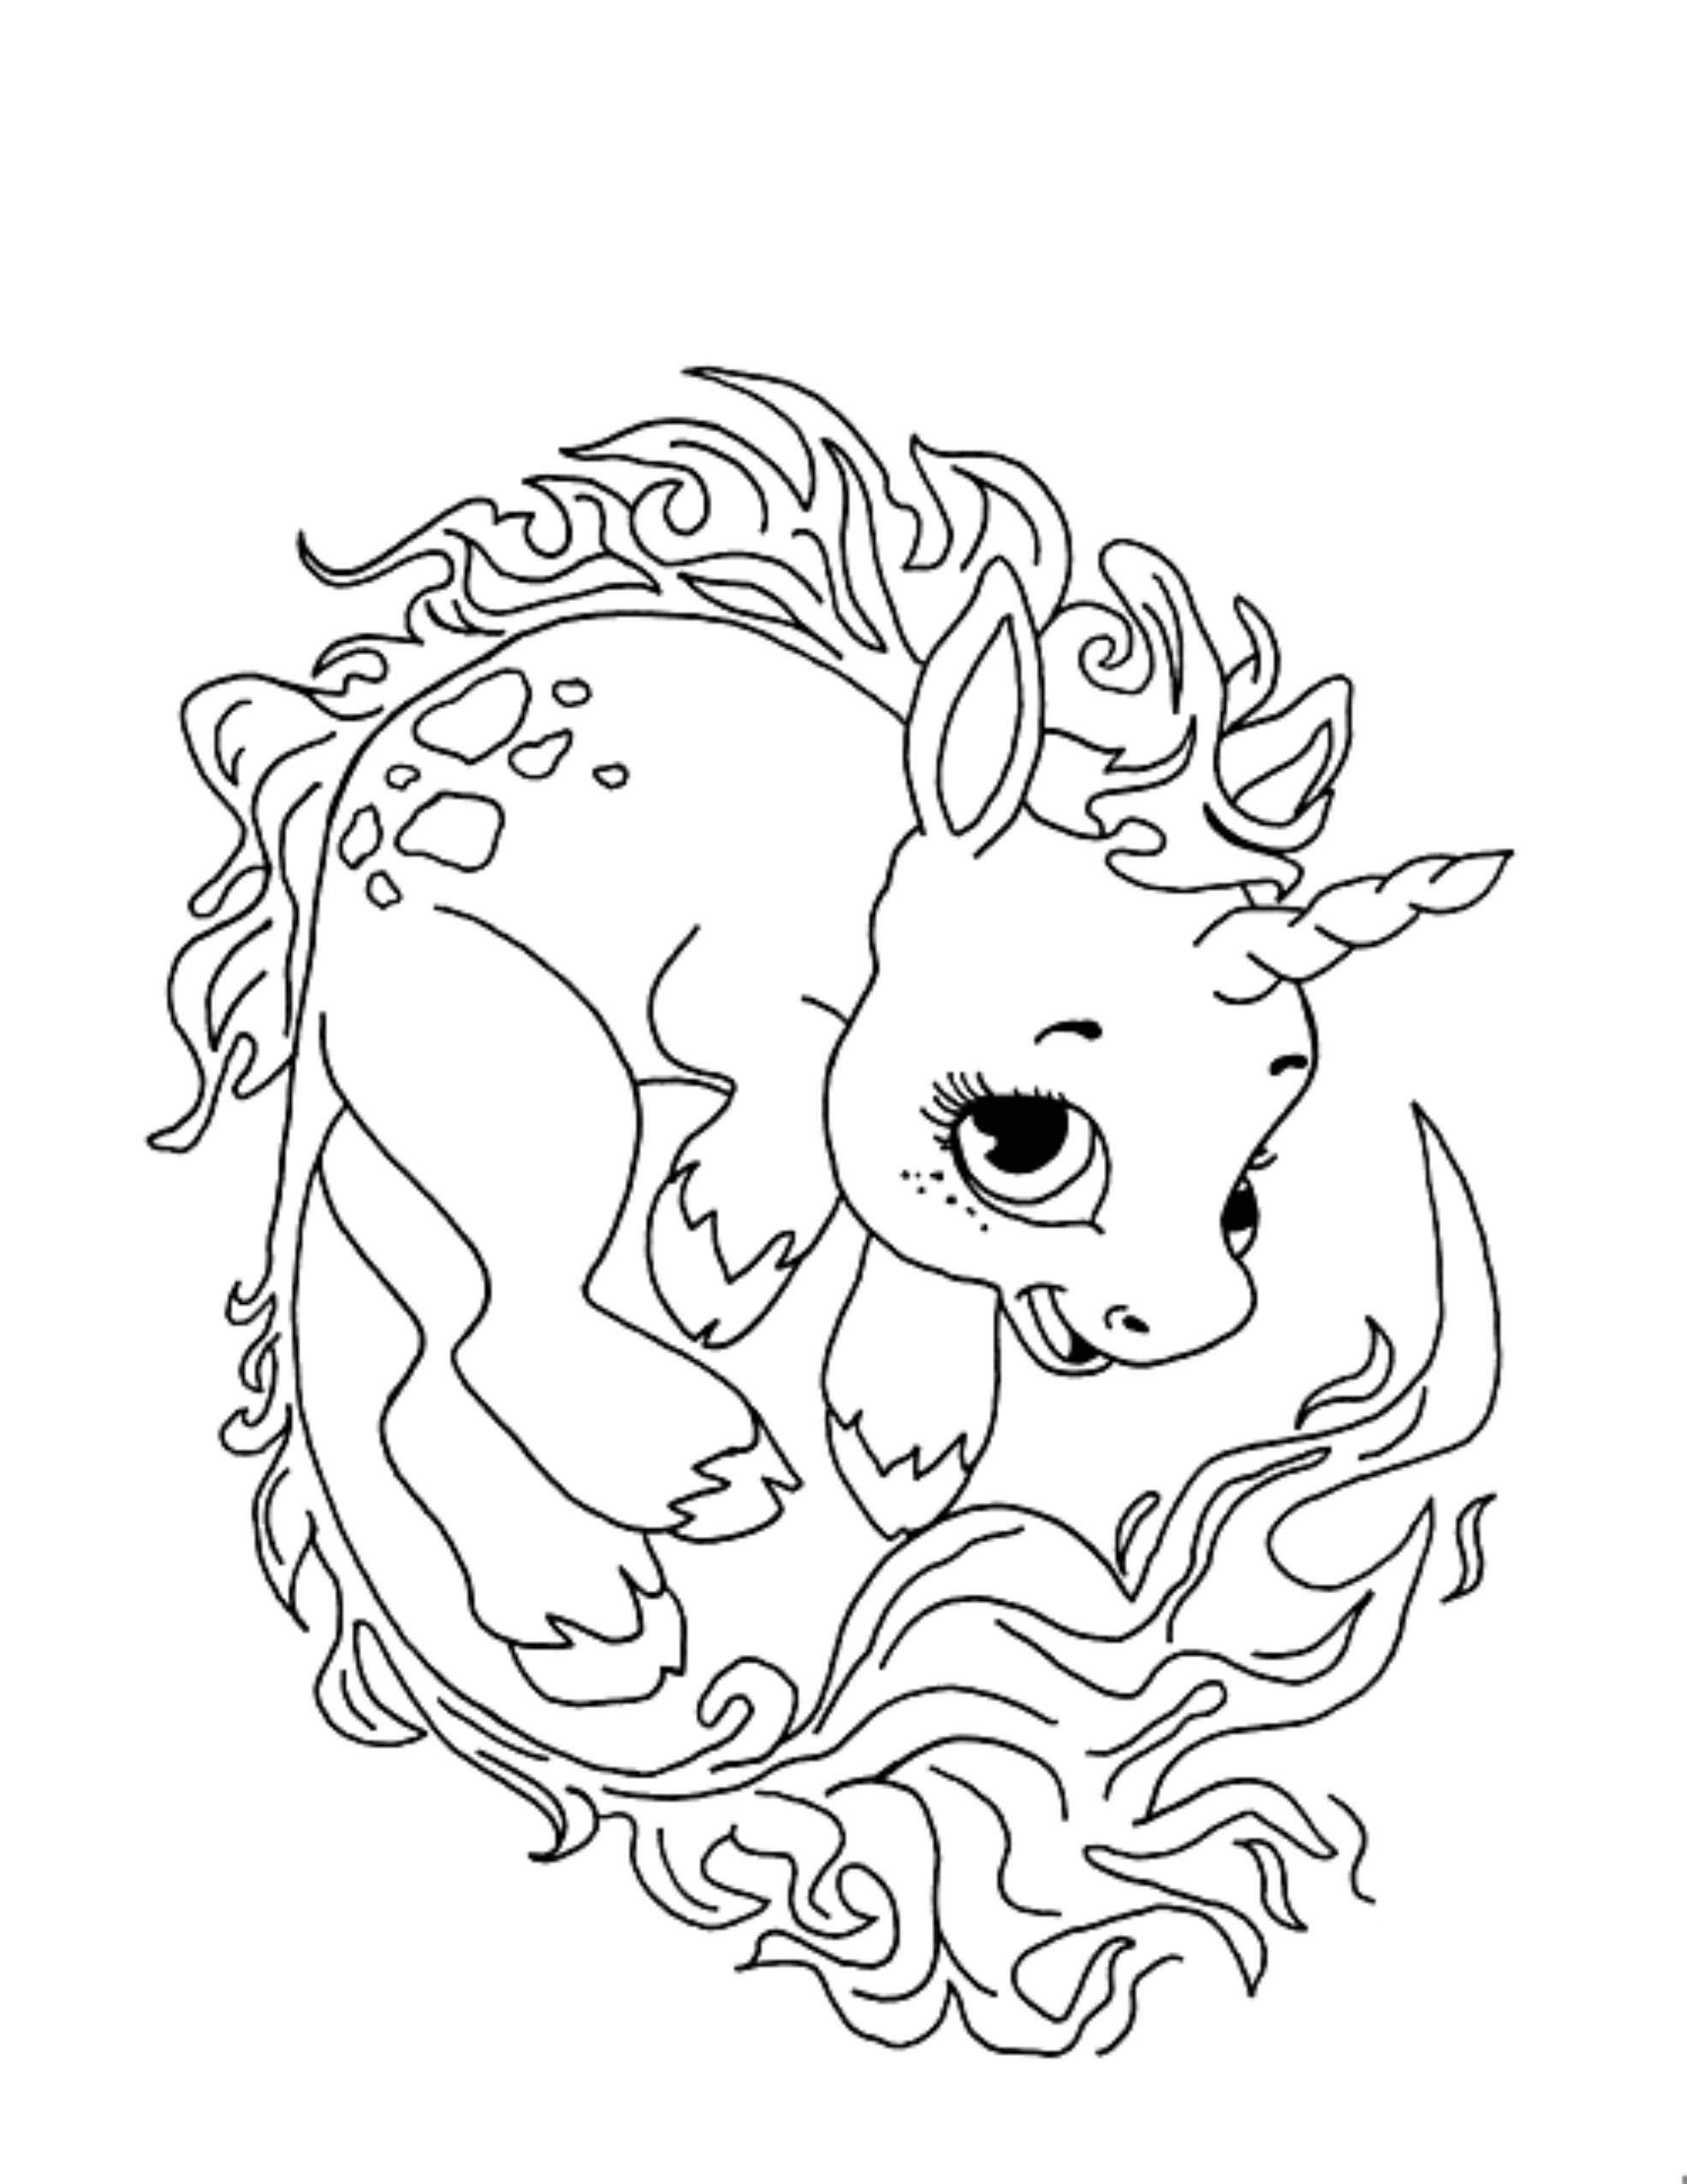 coloring pictures of unicorn unicorn coloring pages to download and print for free unicorn of pictures coloring